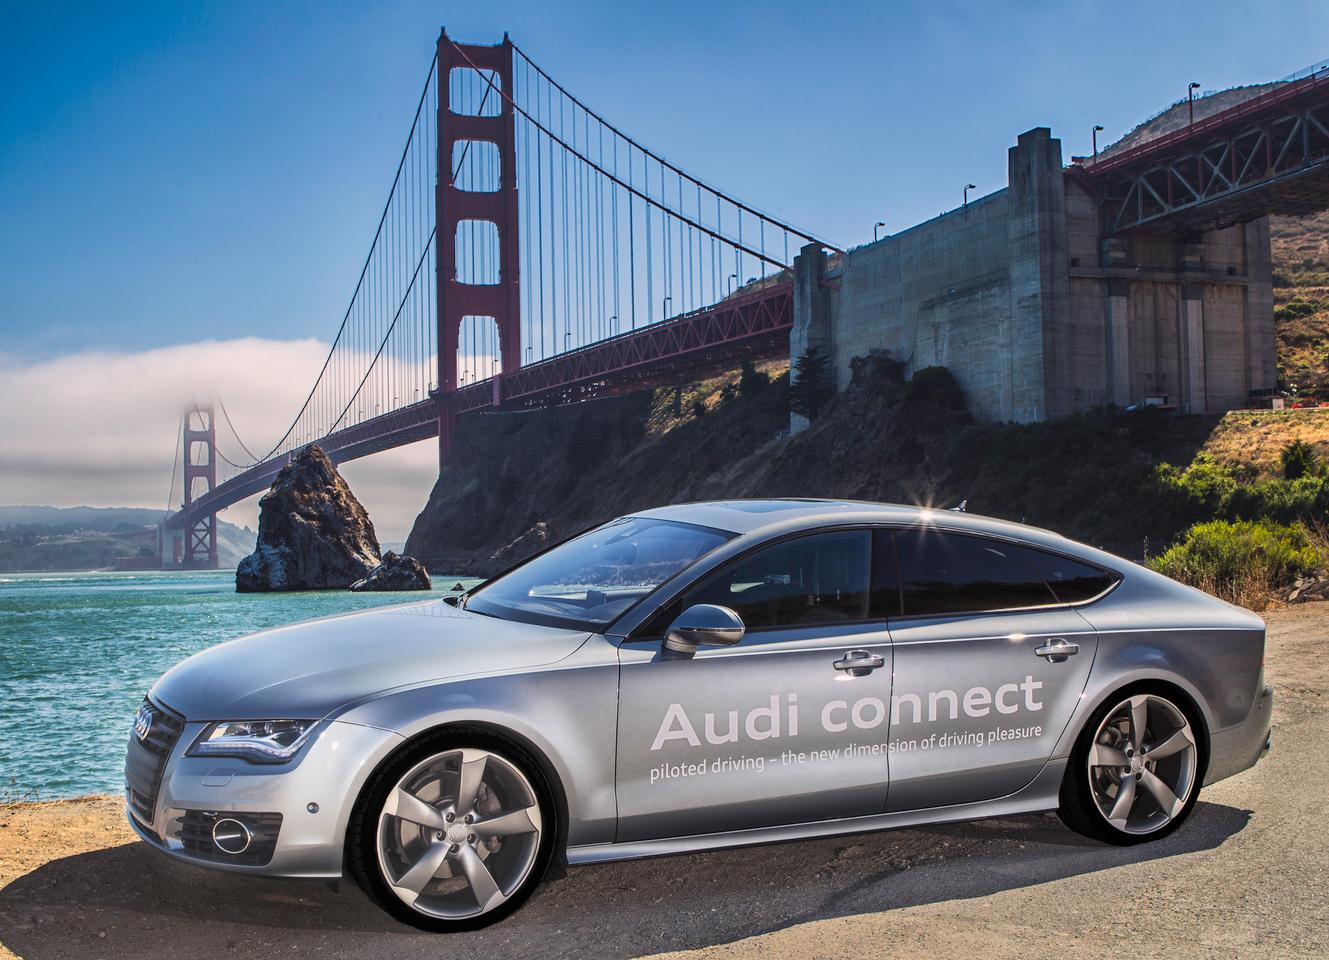 Audi announced it will be the first auto manufacturer to receive an autonomous driving permit from the state of California